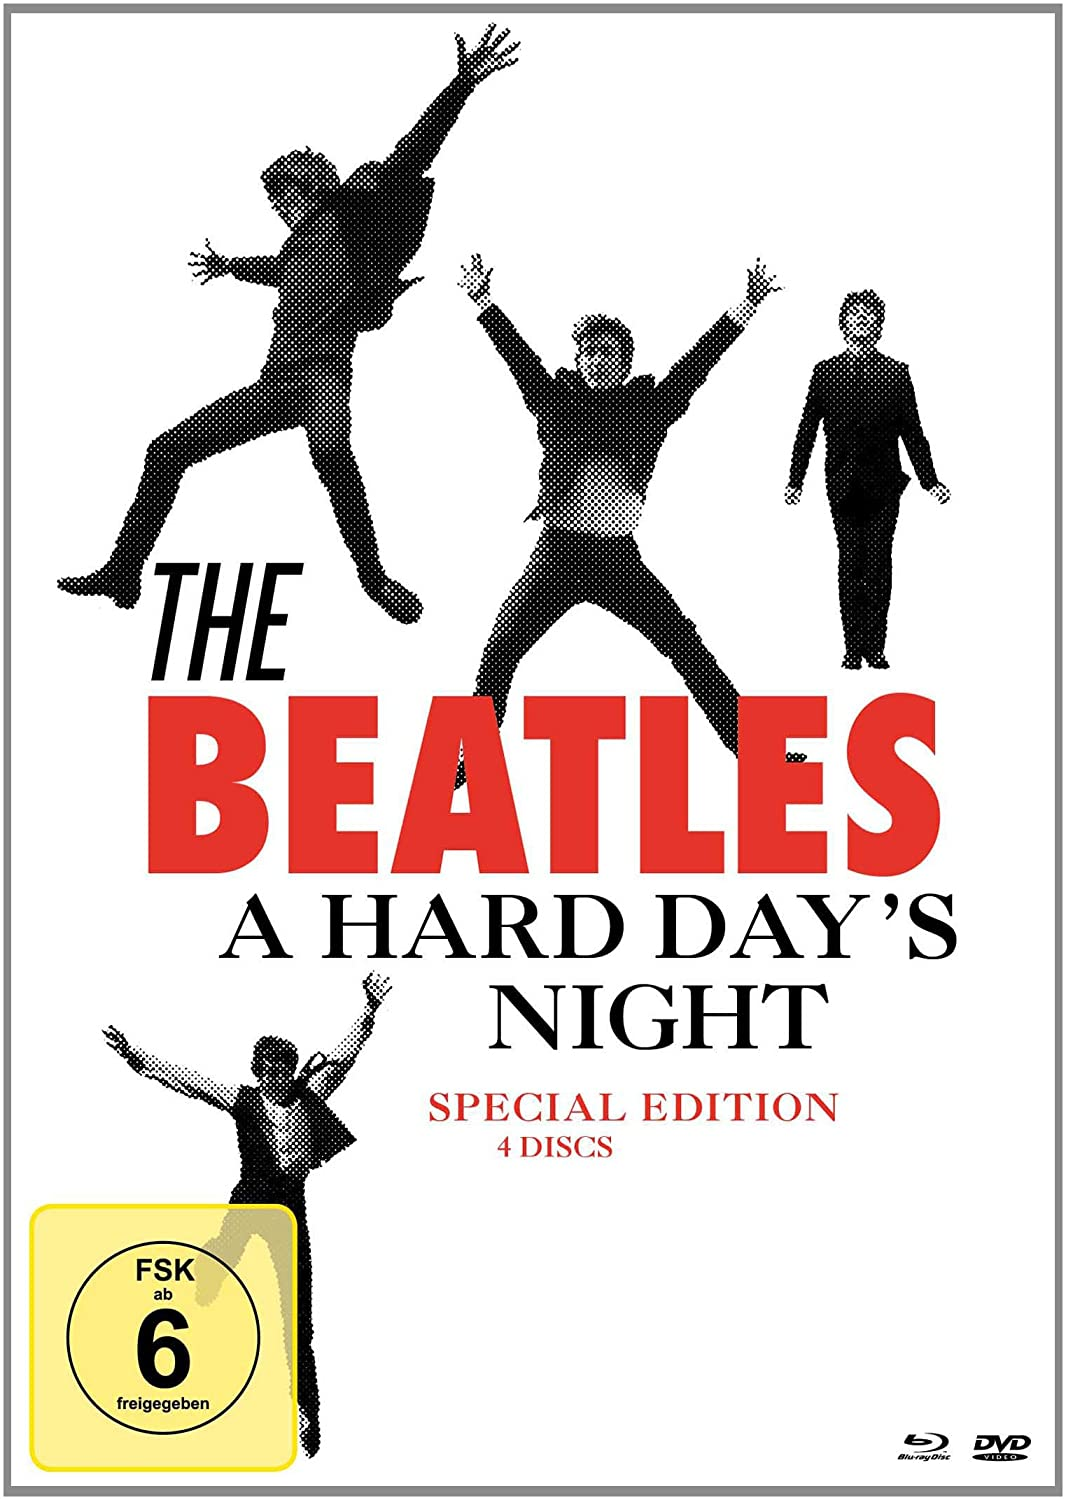 The Beatles - A Hard Day's Night - 4 Disc Special Edition